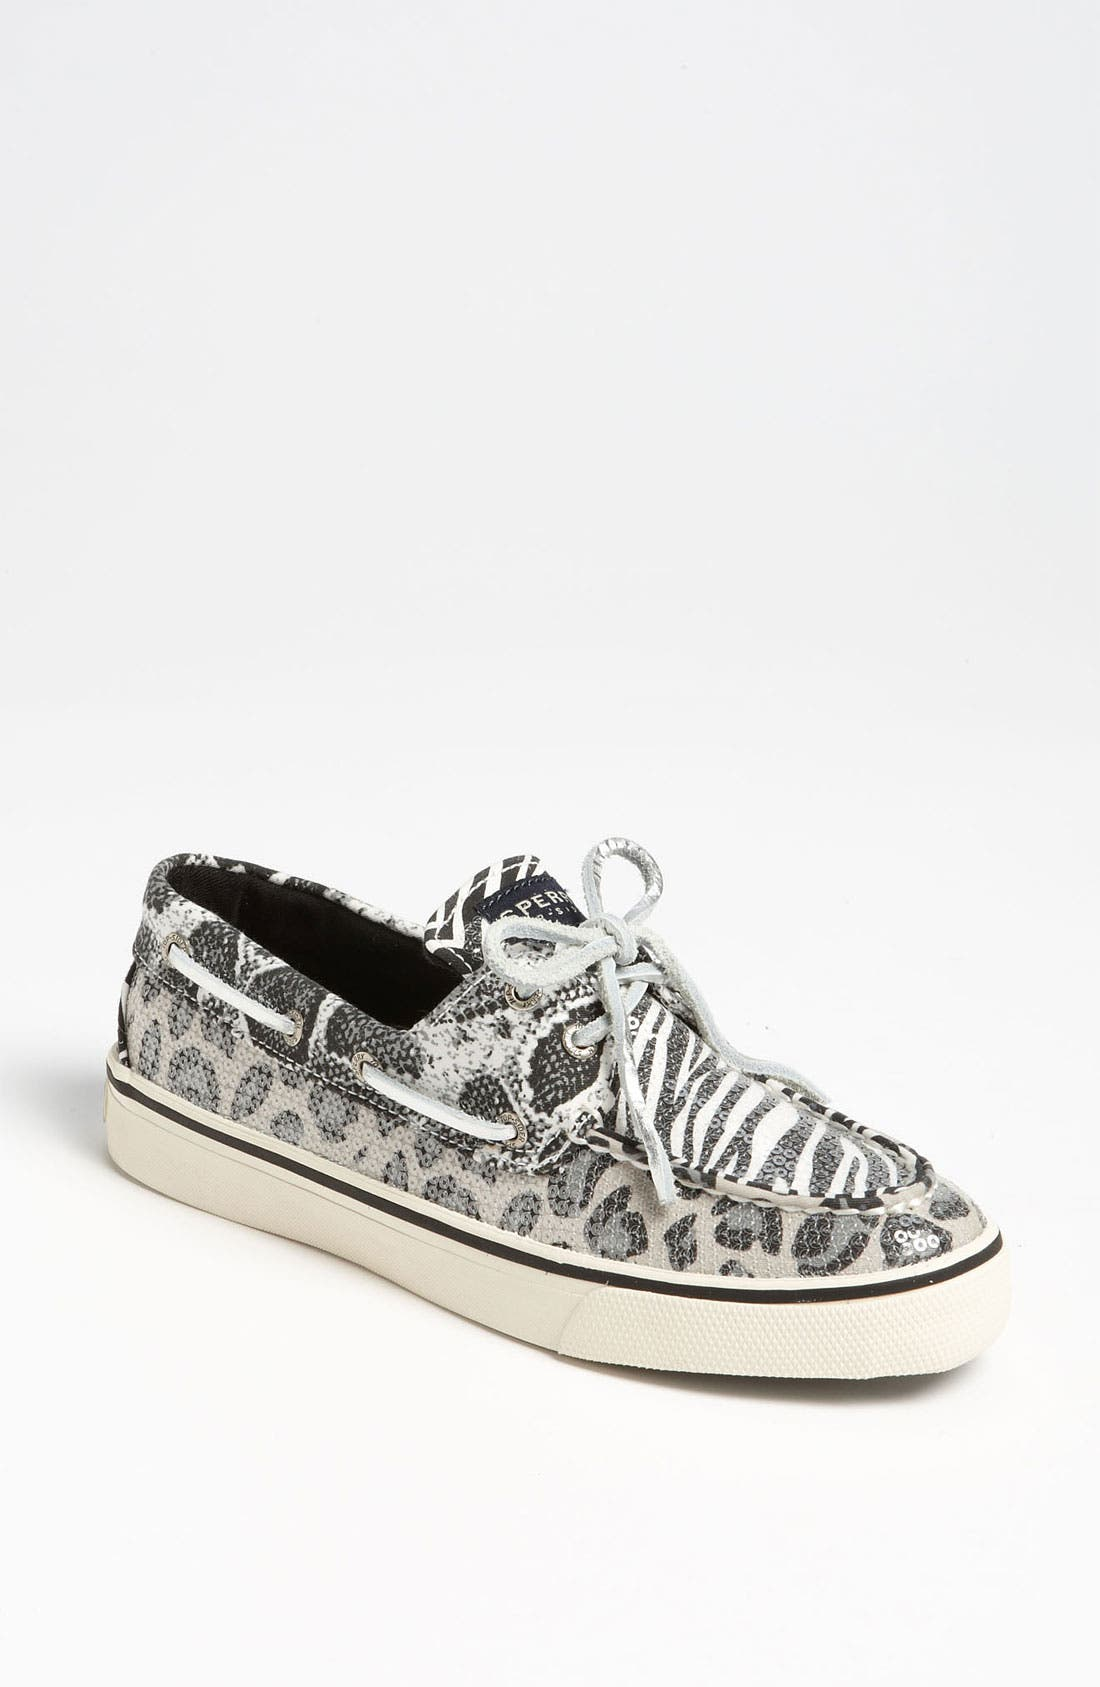 Top-Sider<sup>®</sup> 'Bahama' Sequined Boat Shoe,                             Main thumbnail 8, color,